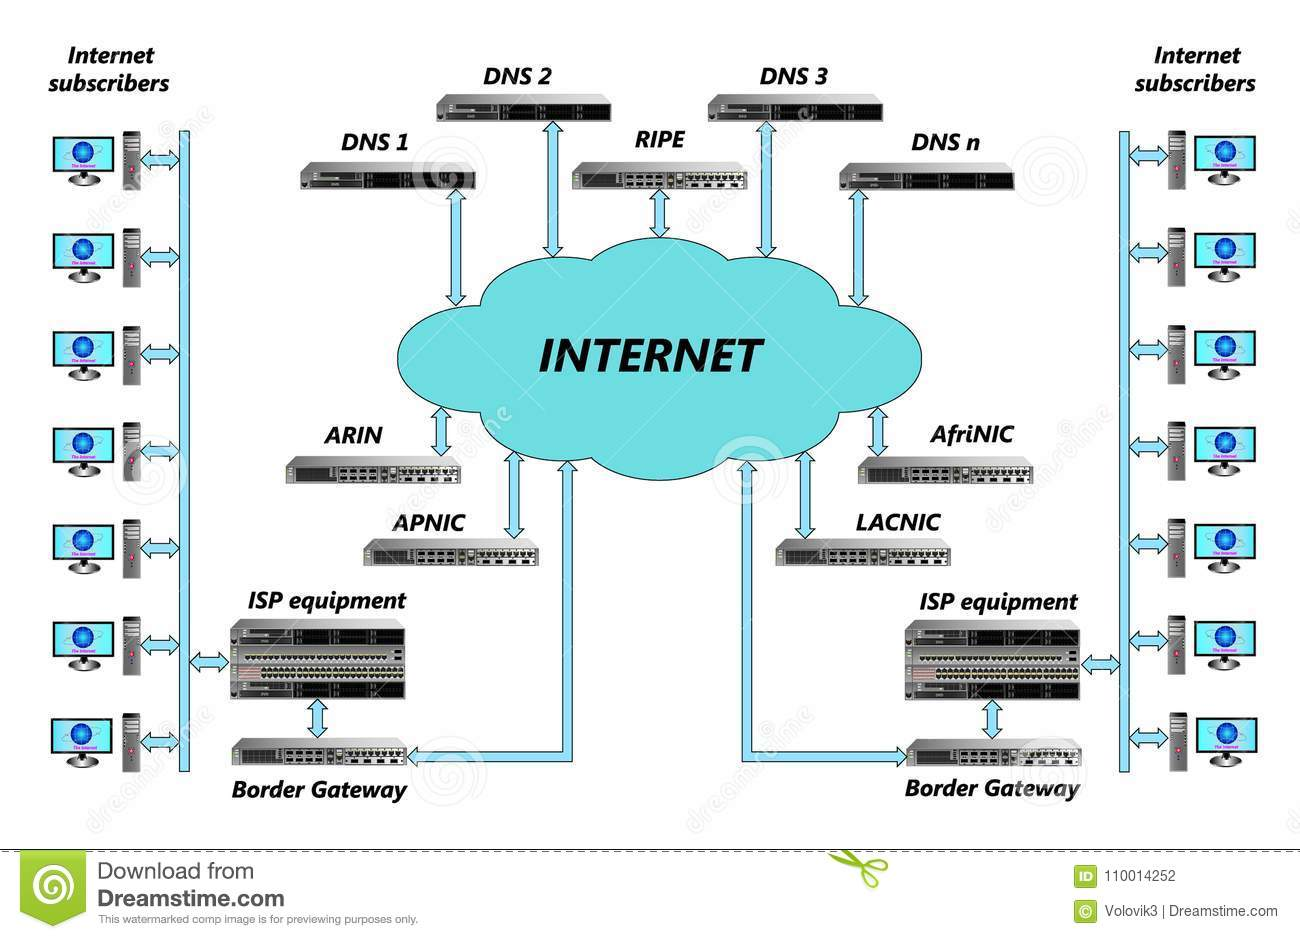 Structural diagram of the Internet with subscribers, equipment, interconnections, basic services and management points.